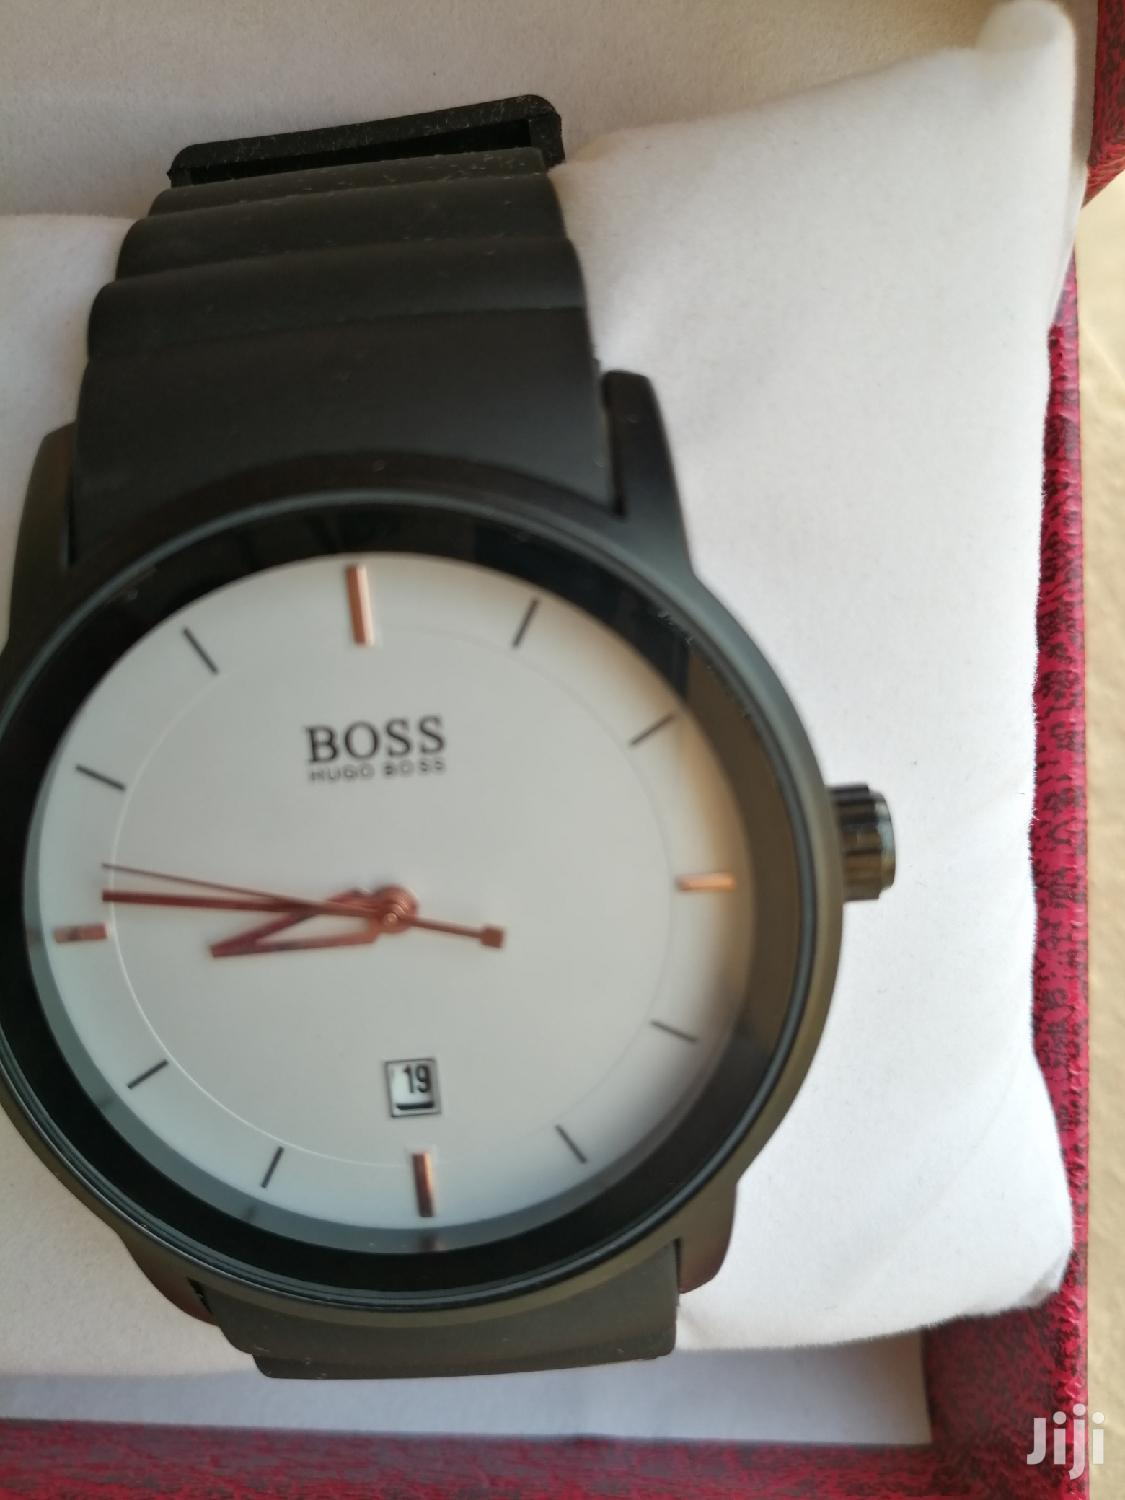 Archive: Wear Hugo Boss To Be The Right Boss